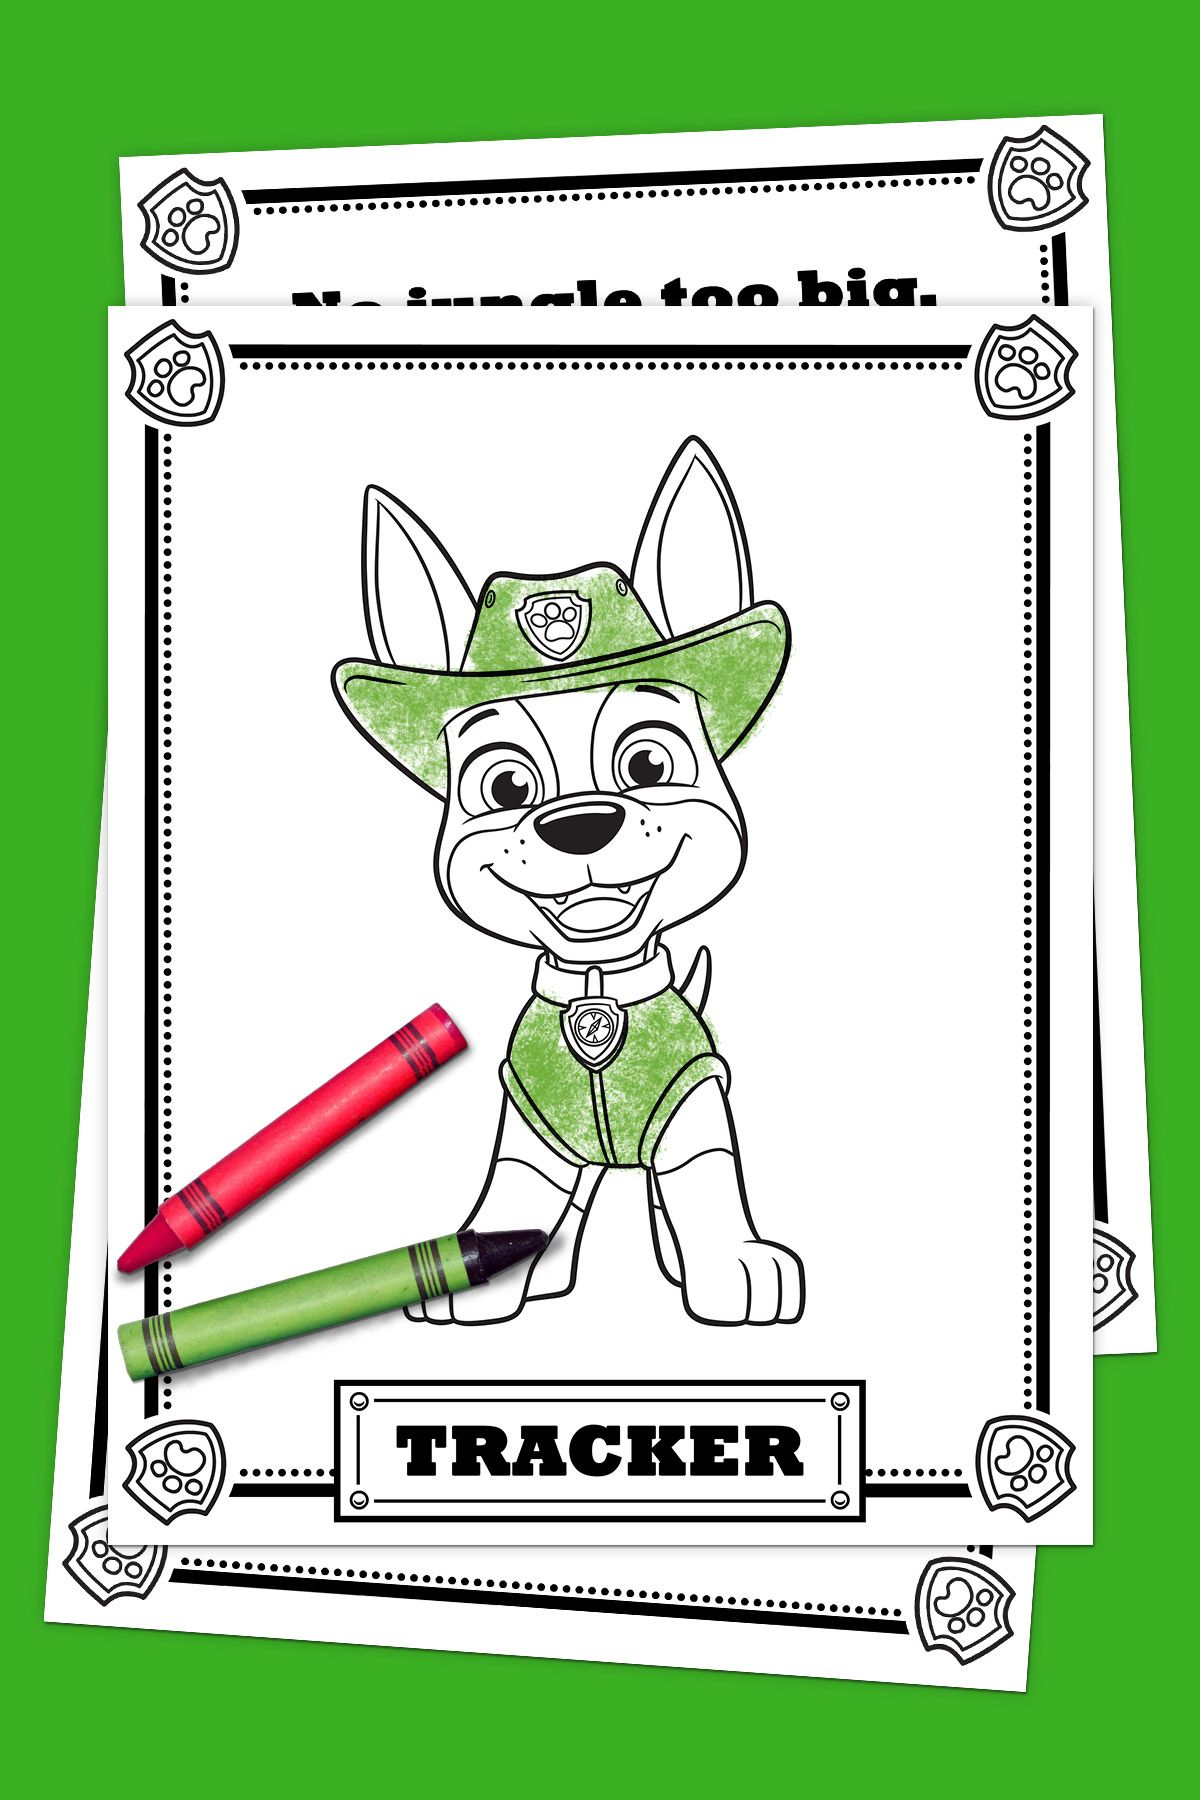 Paw Patrol Tracker Coloring Pack Paw Patrol Coloring Paw Patrol Coloring Pages Paw Patrol Tracker